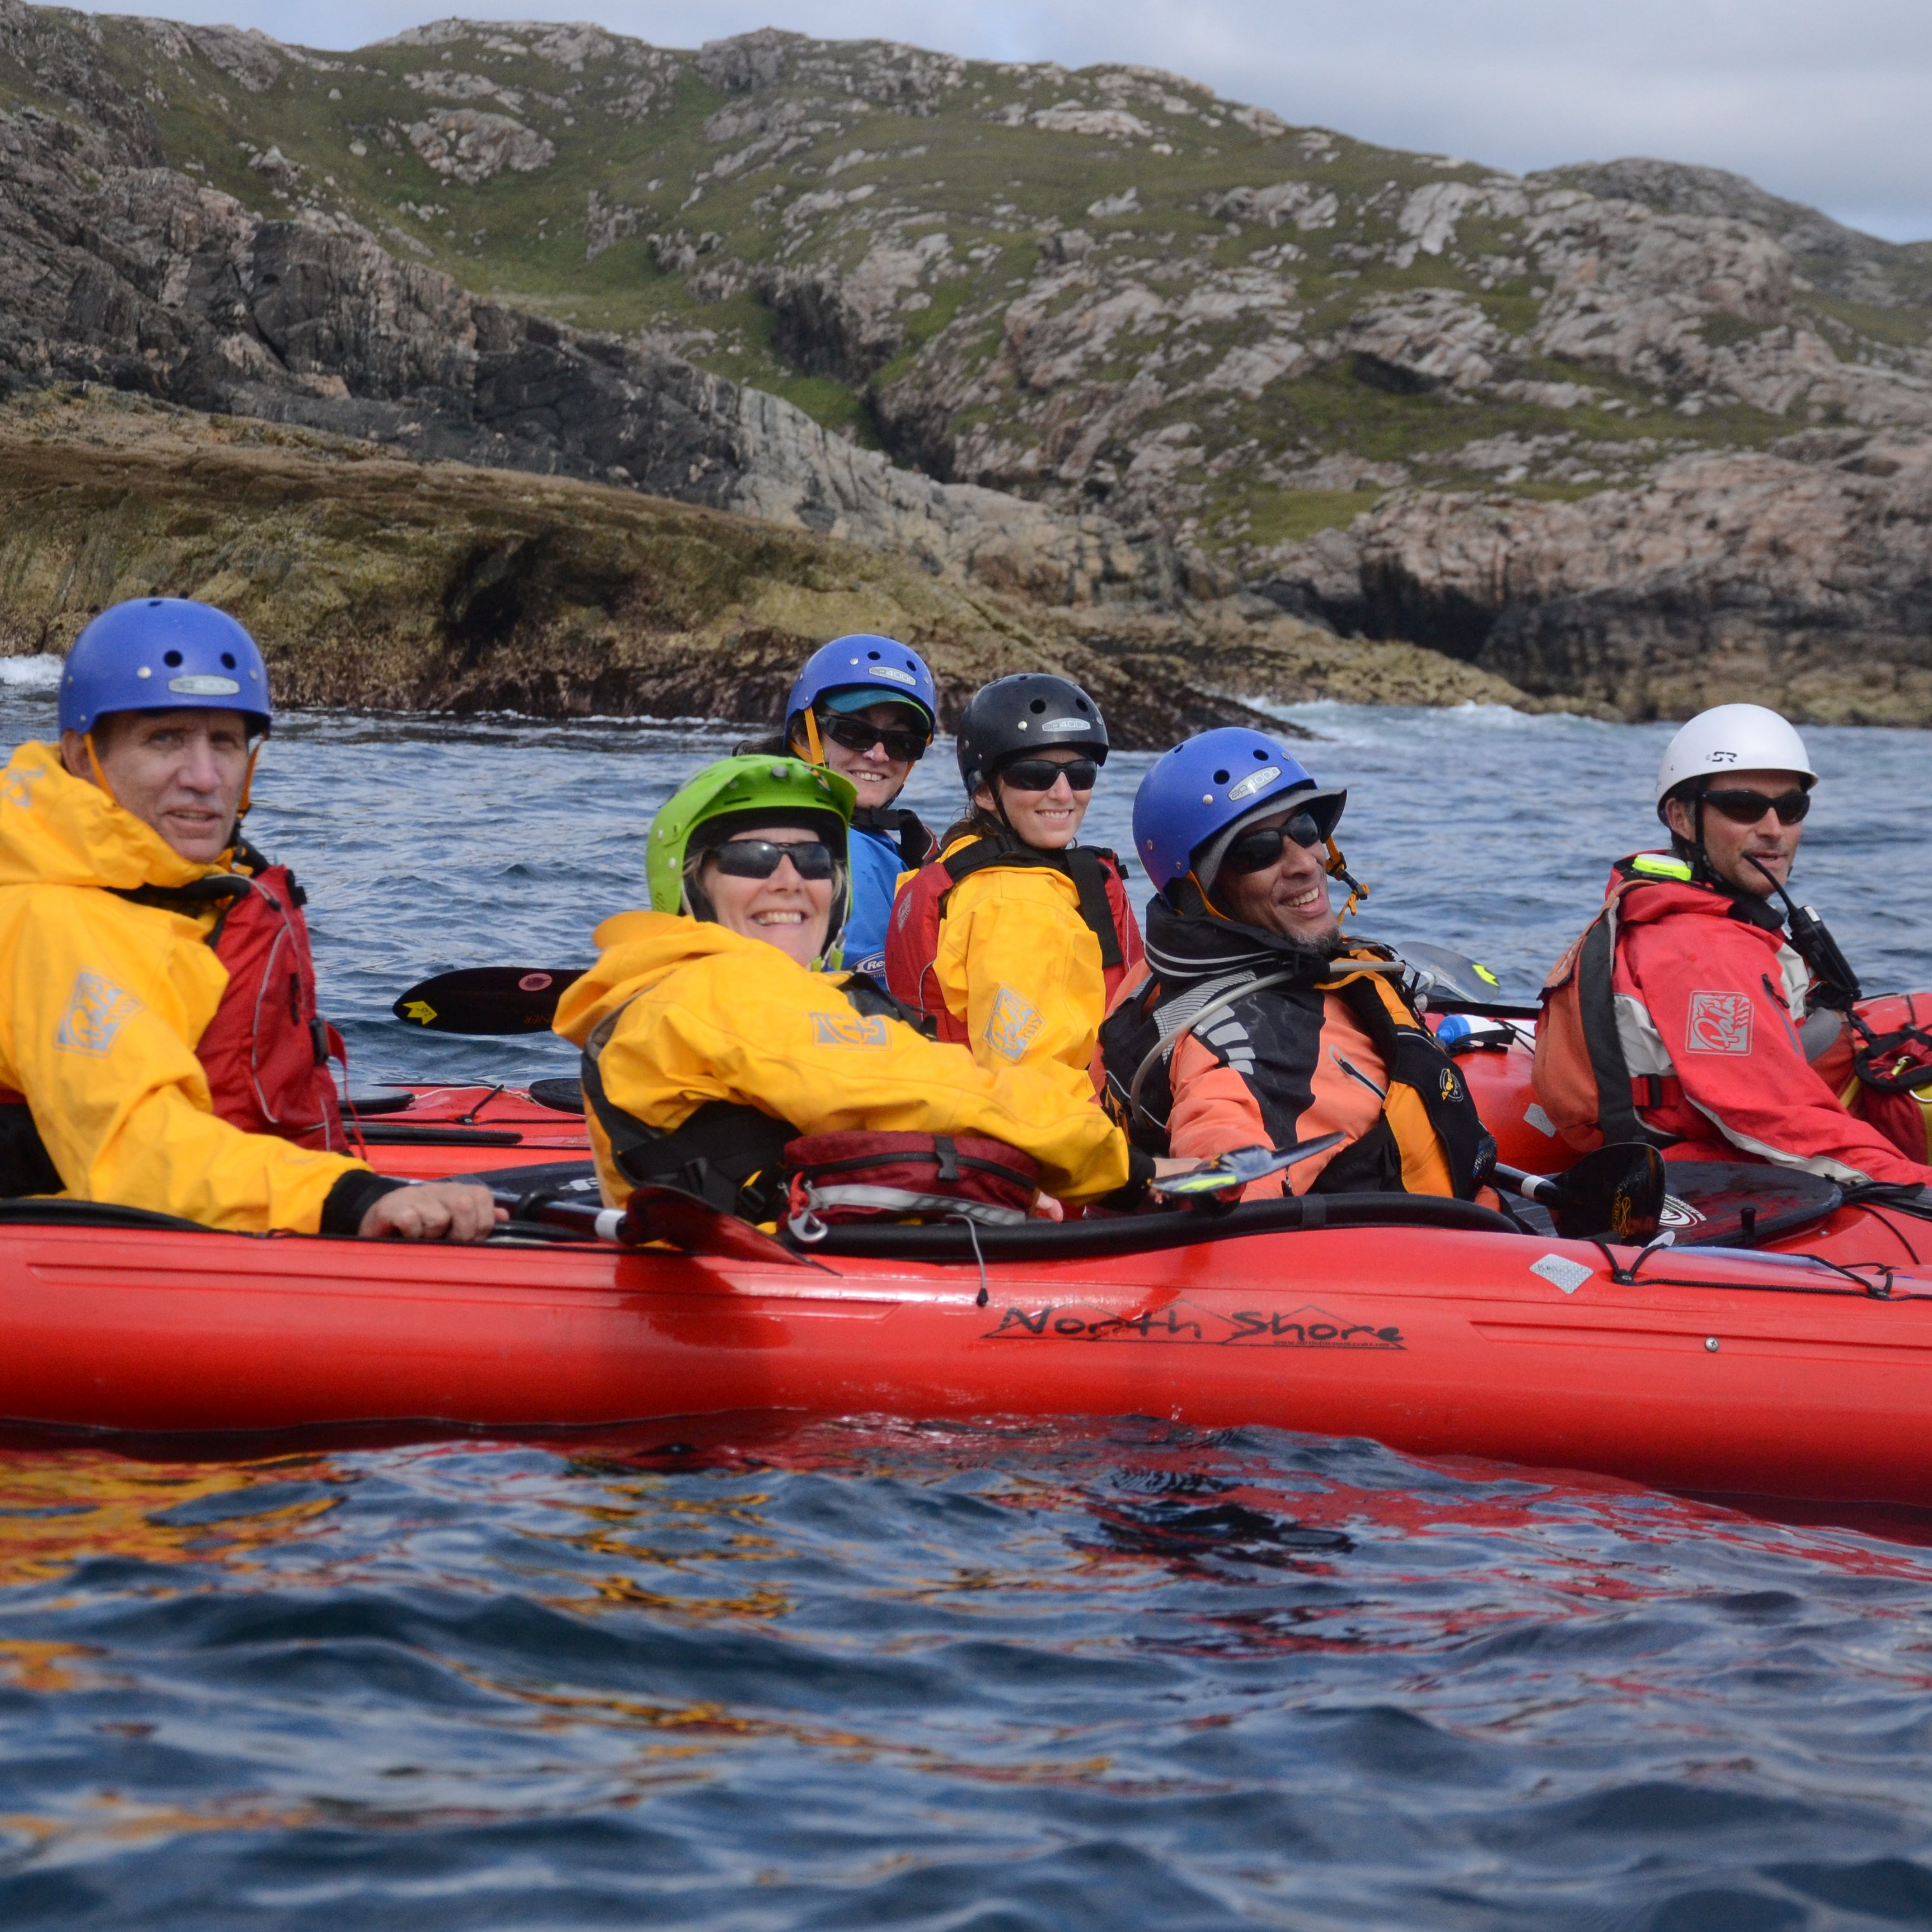 Crossing to Iona